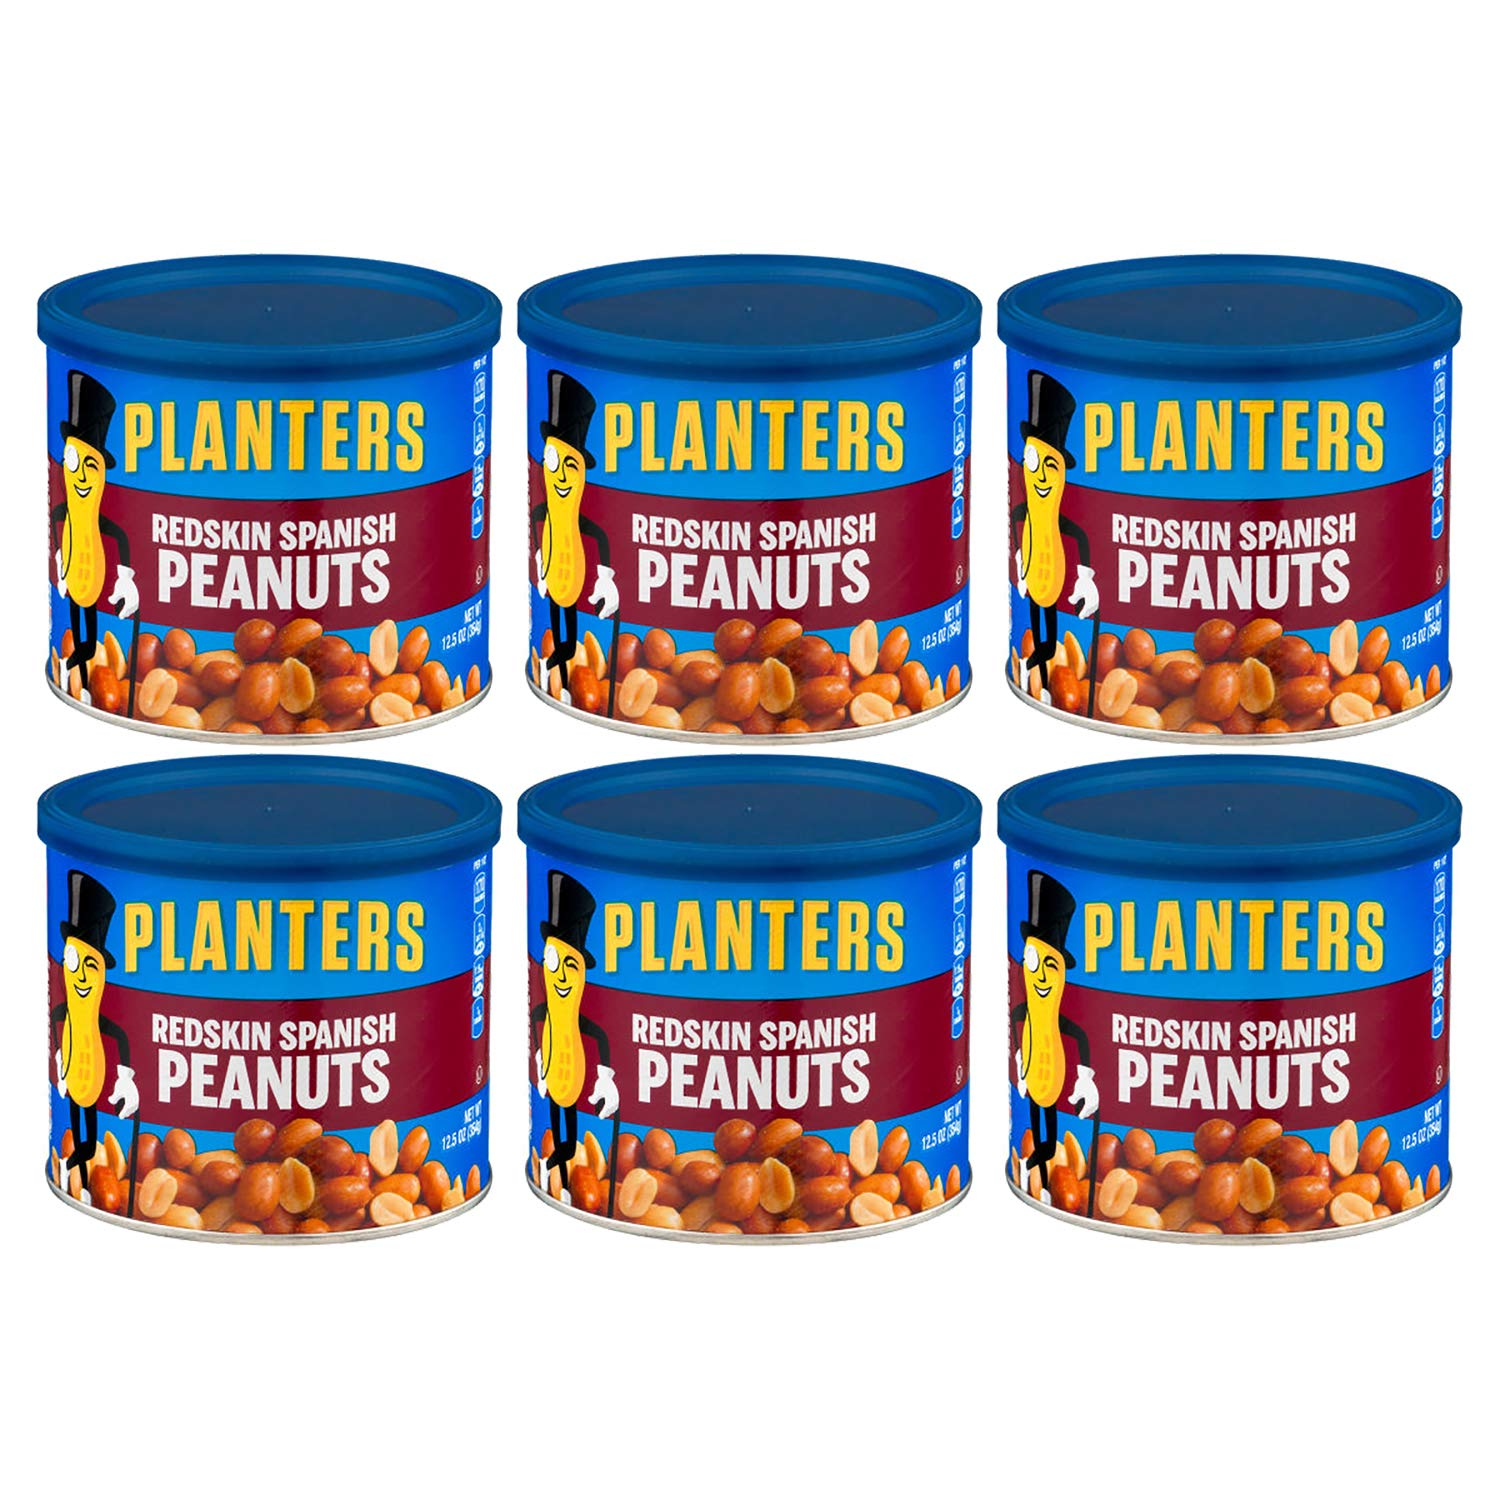 Planters Redskin Spanish Peanuts Sea Salt, 12.5 OZ (Pack of 6) by Kraft by Planters (Image #1)